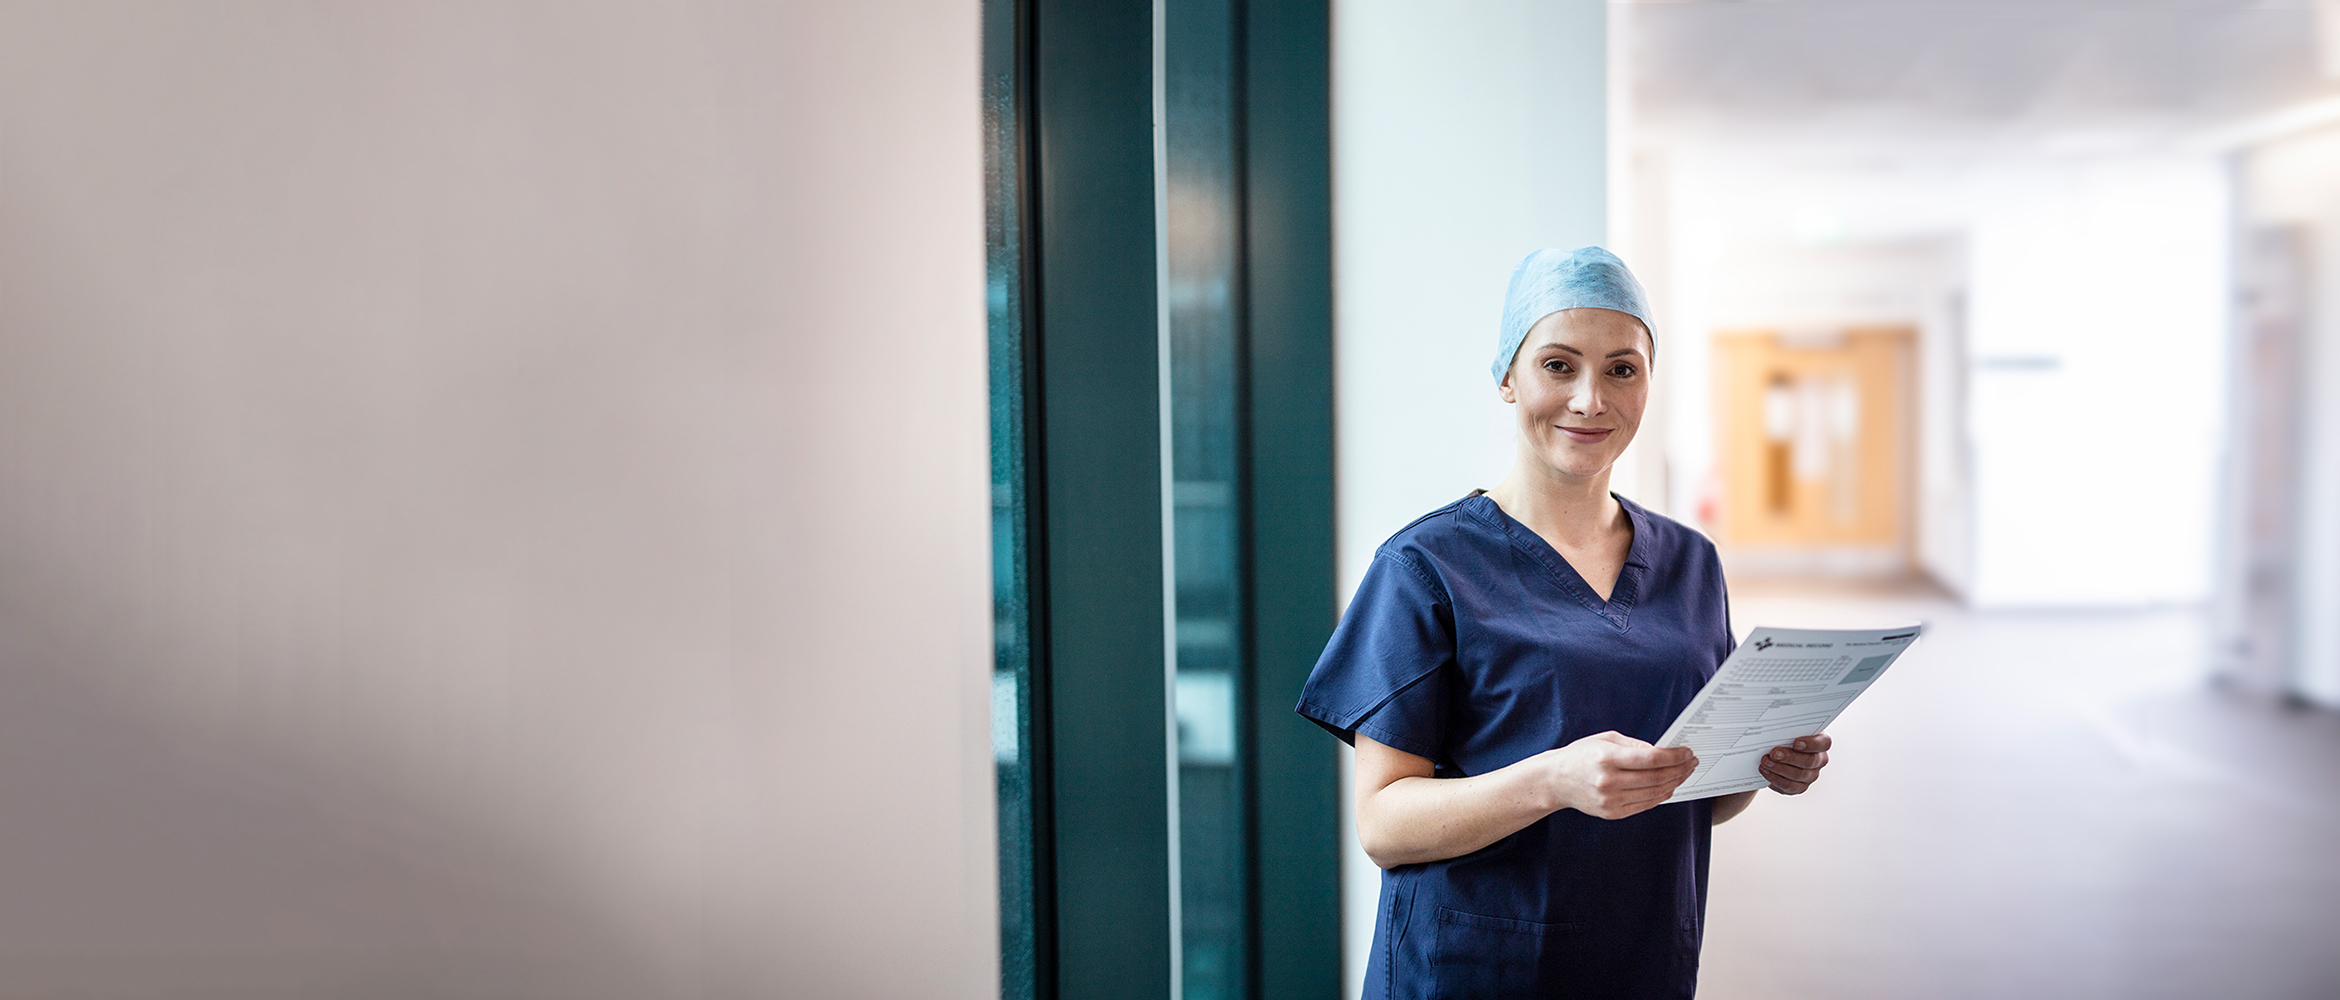 Female doctor wearing surgical scrubs and hat holding blue folder, in corridor with door in background